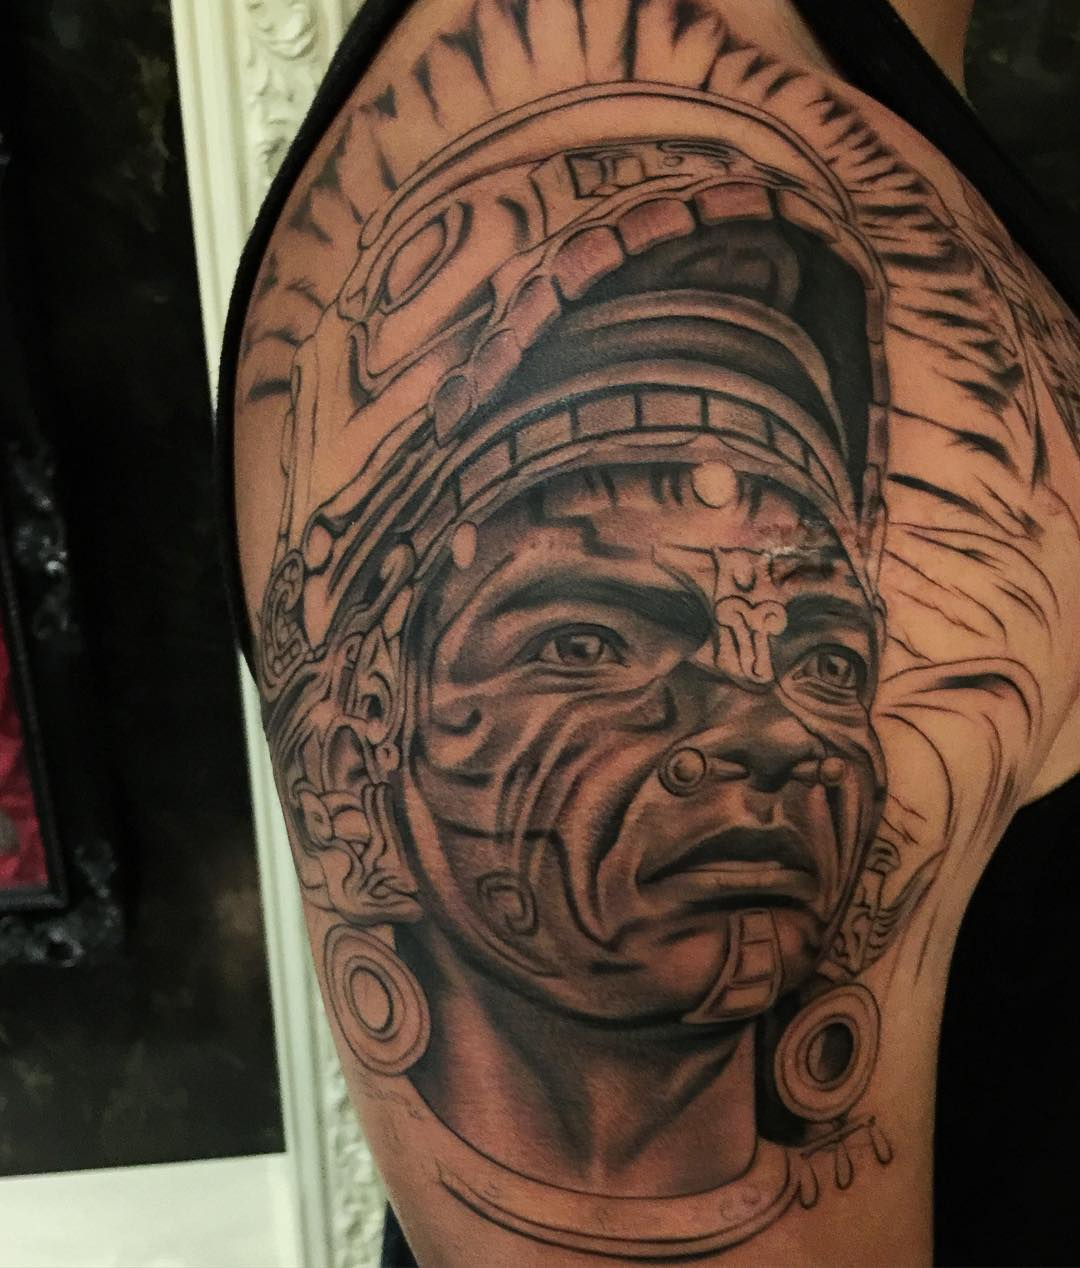 Awesome Aztec Tattoo Design